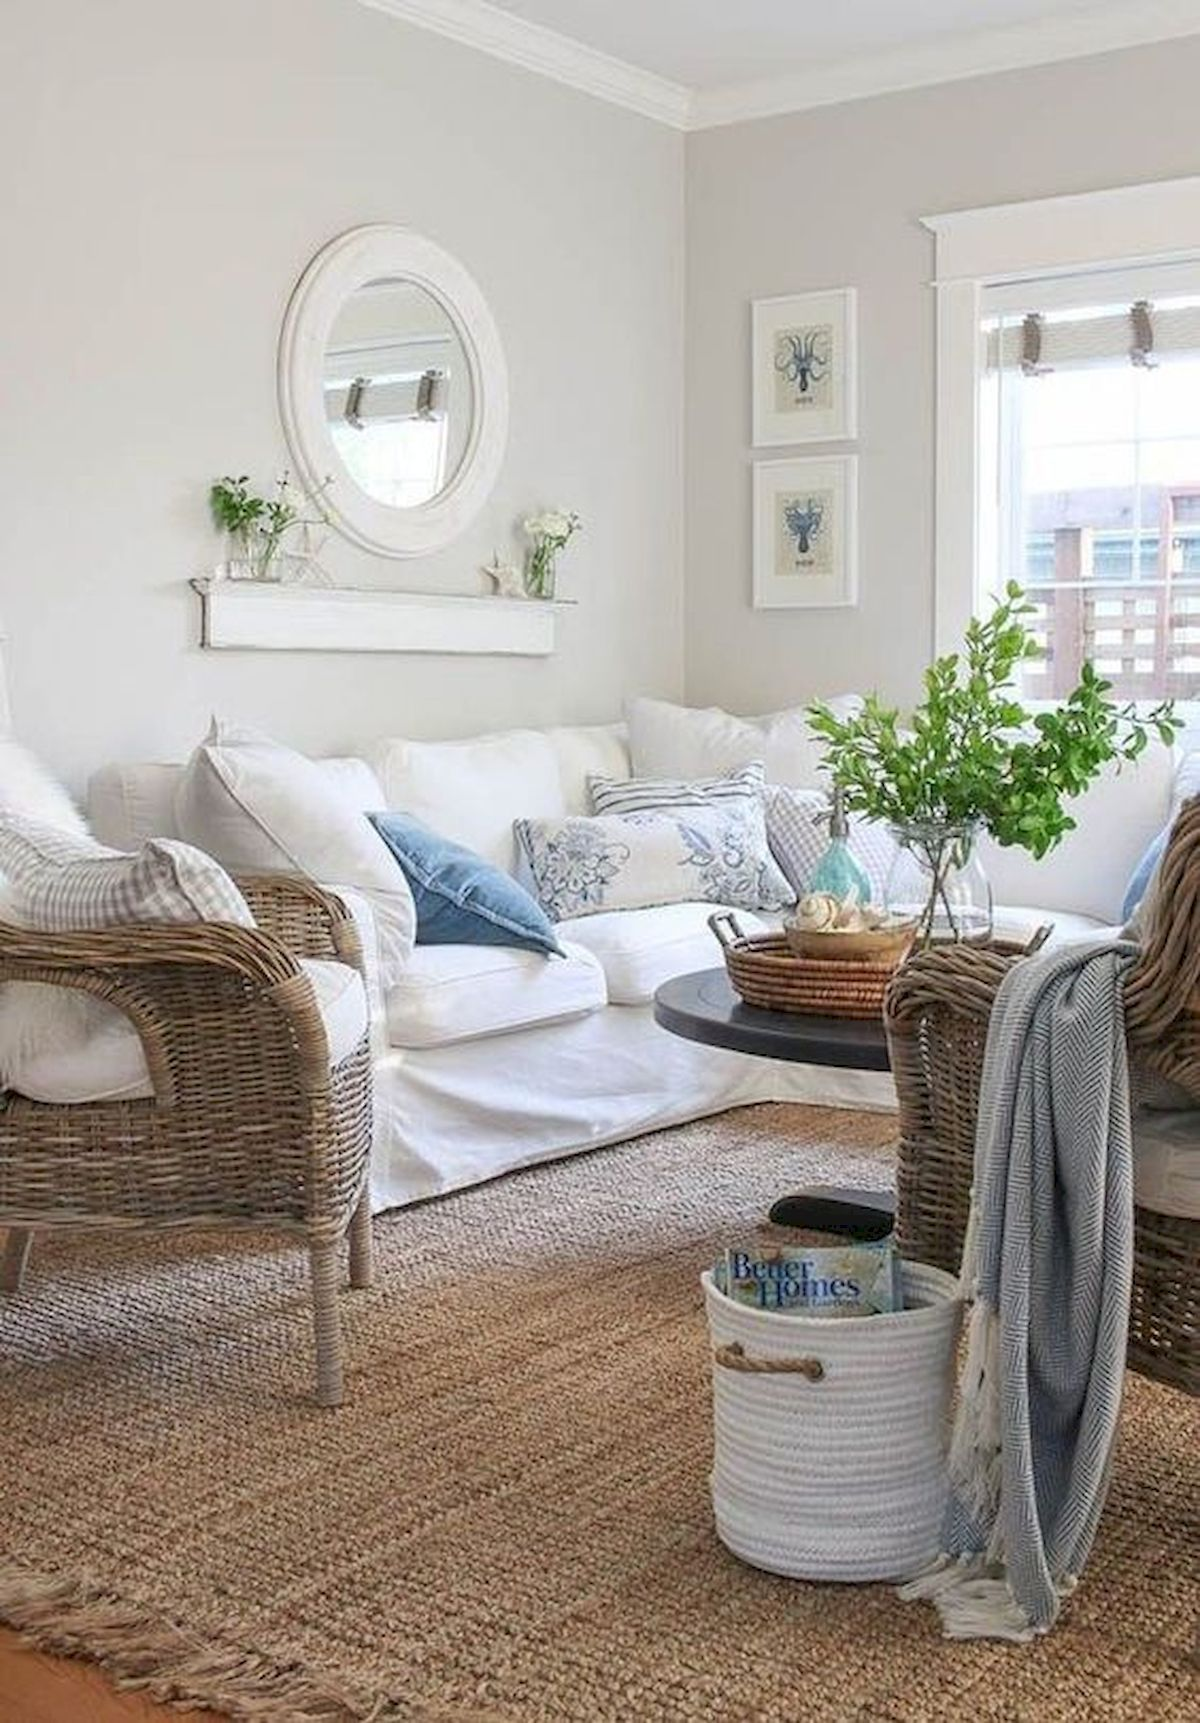 35 Cozy DIY Living Room Design and Decor Ideas | Greige ...